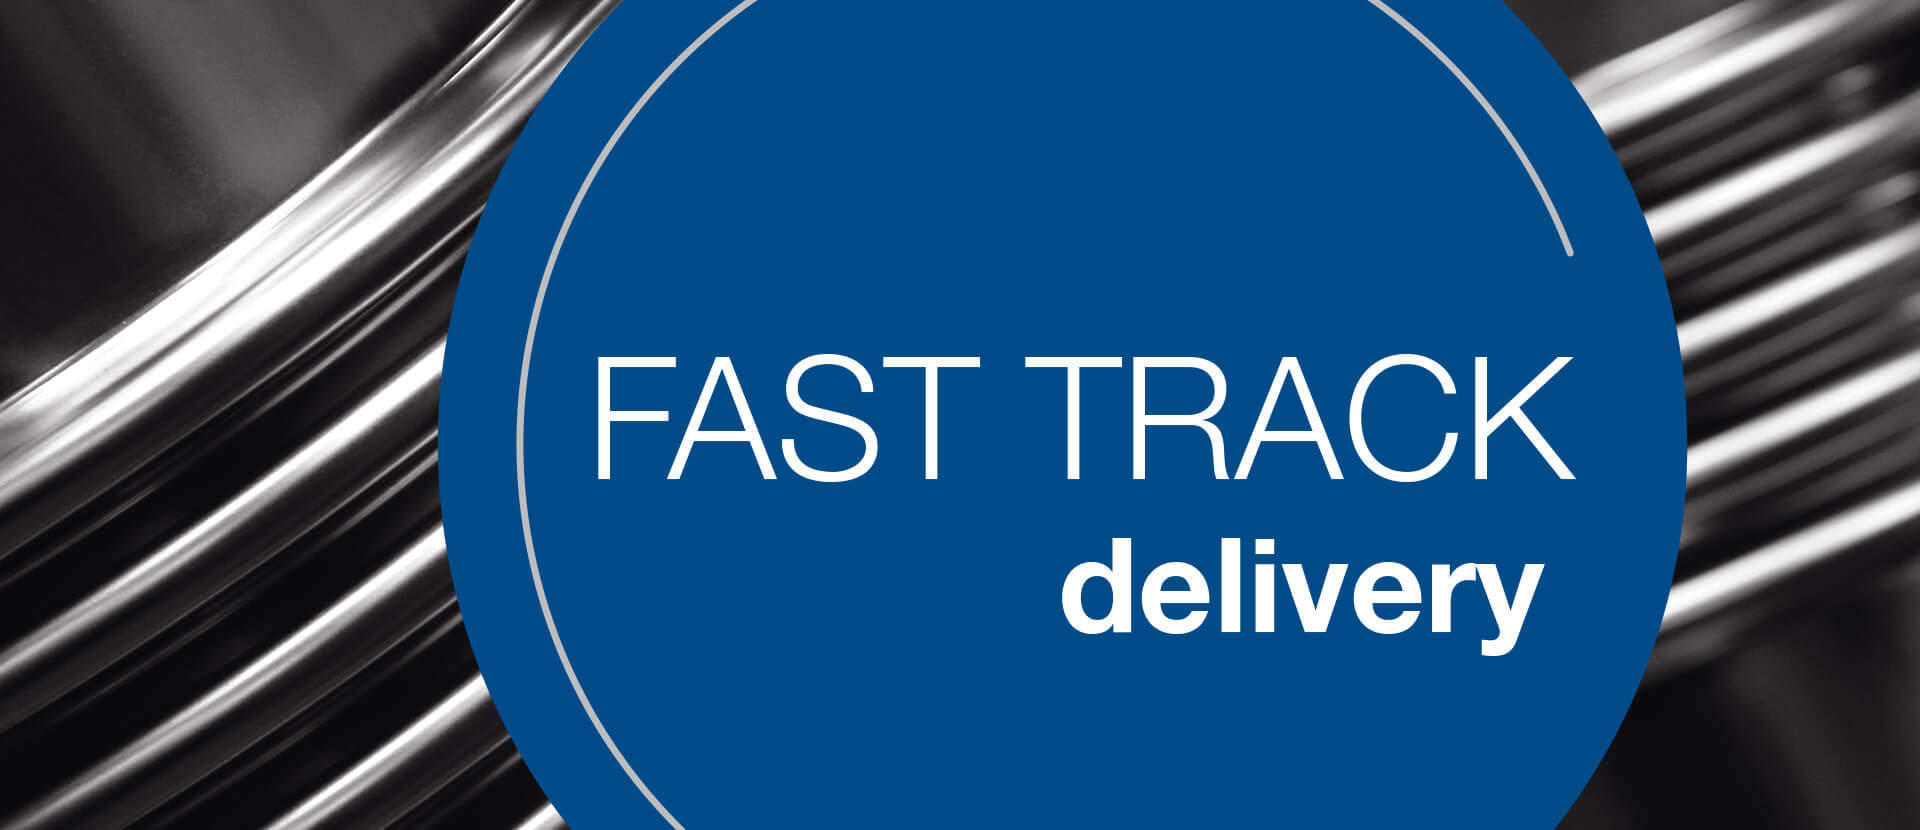 Belman fast track delivery